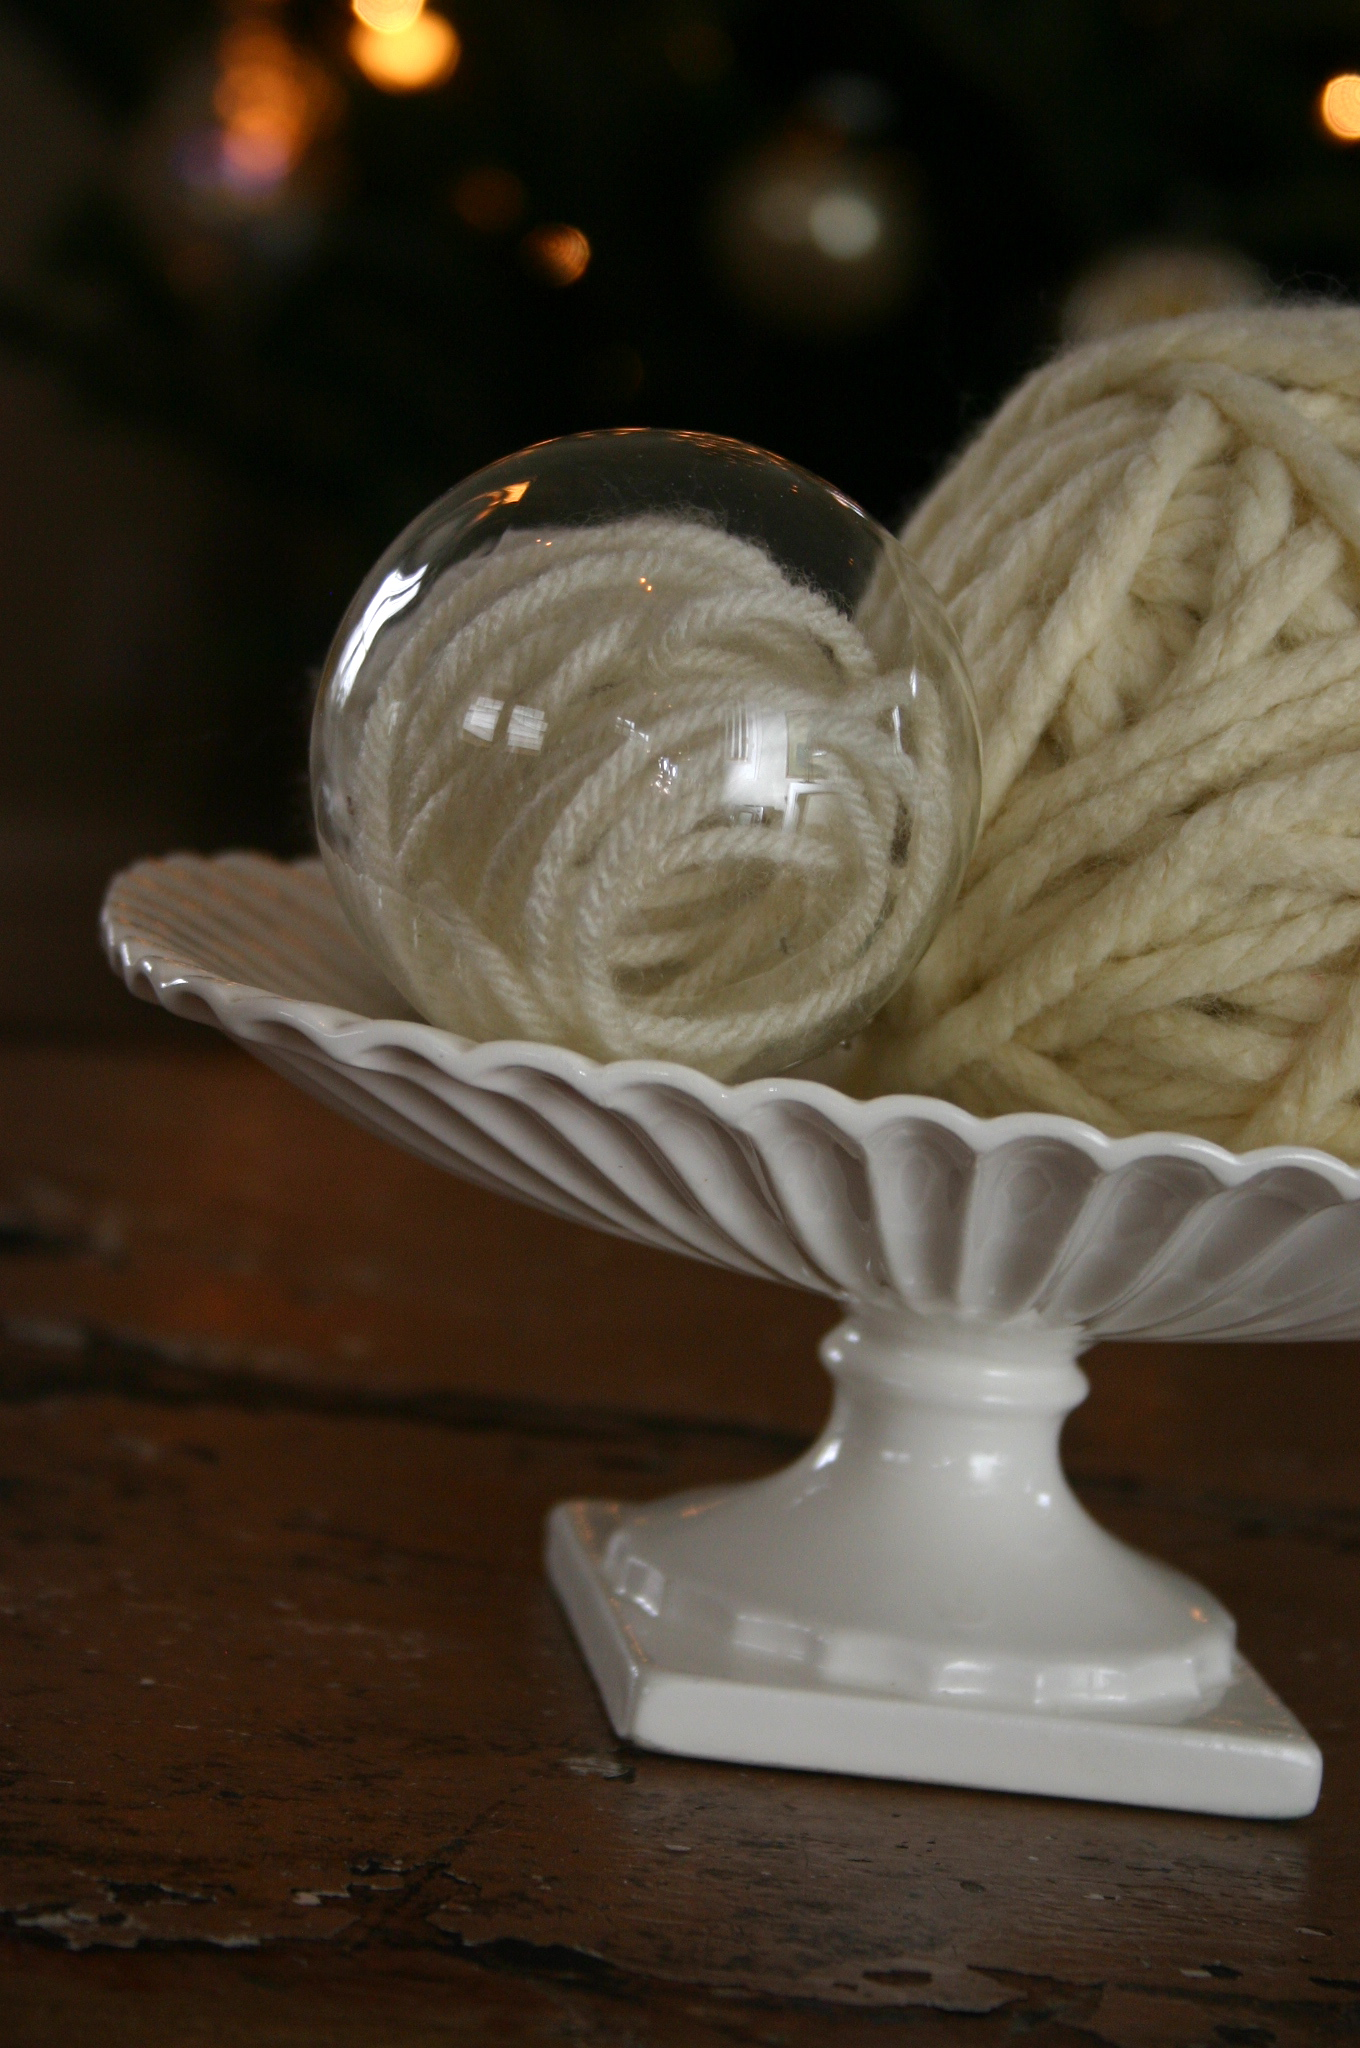 Plain glass balls are filled with  yarn to create an interesting ornament.